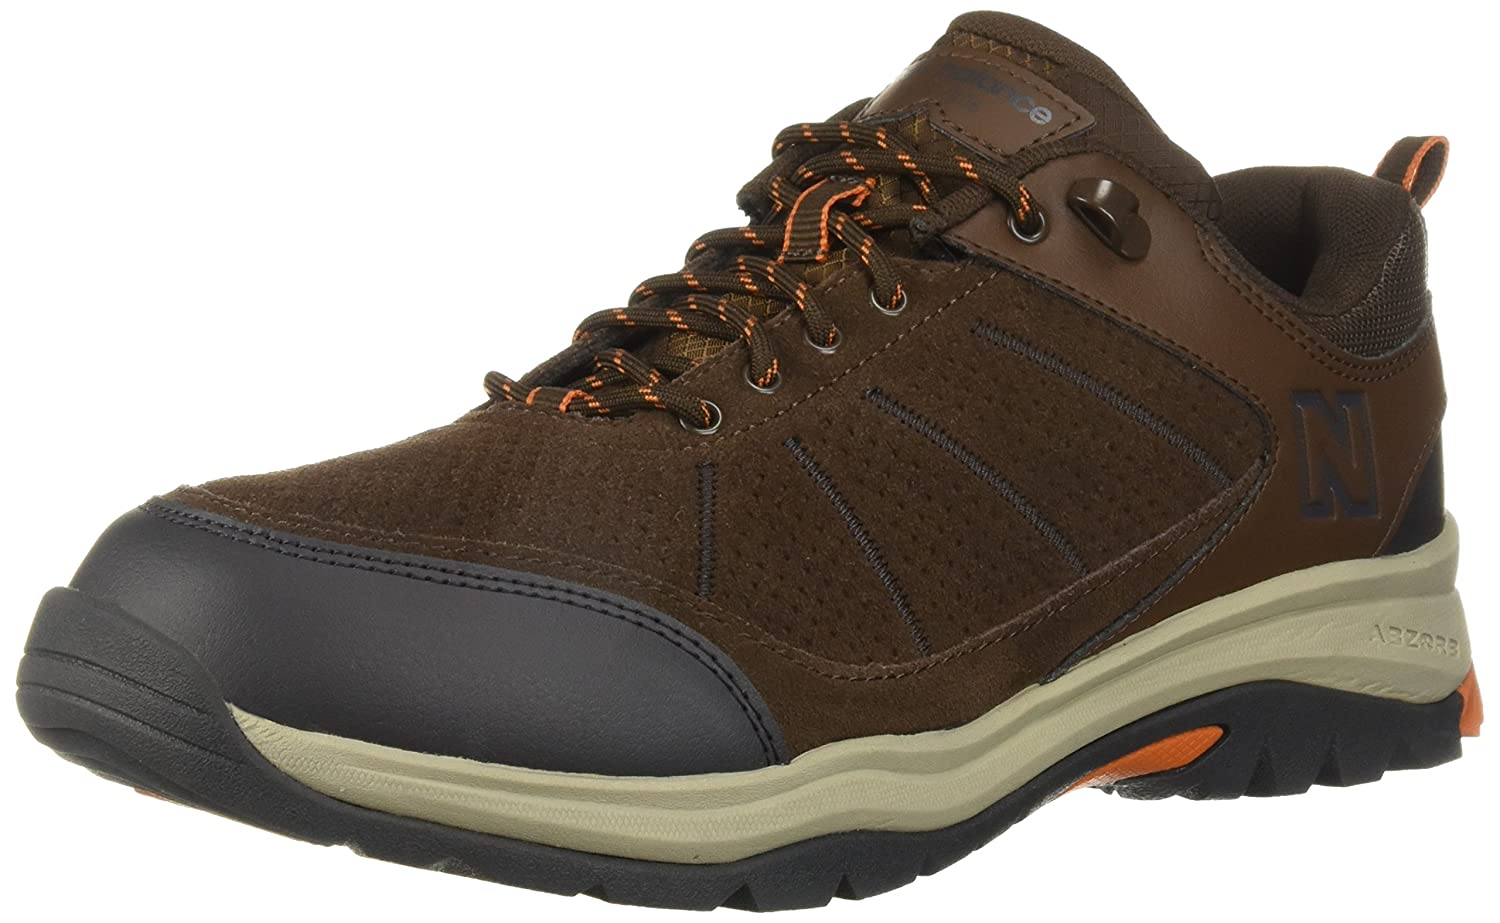 New Balance Men's 1201v1 Walking Shoe 17 M US|Brown